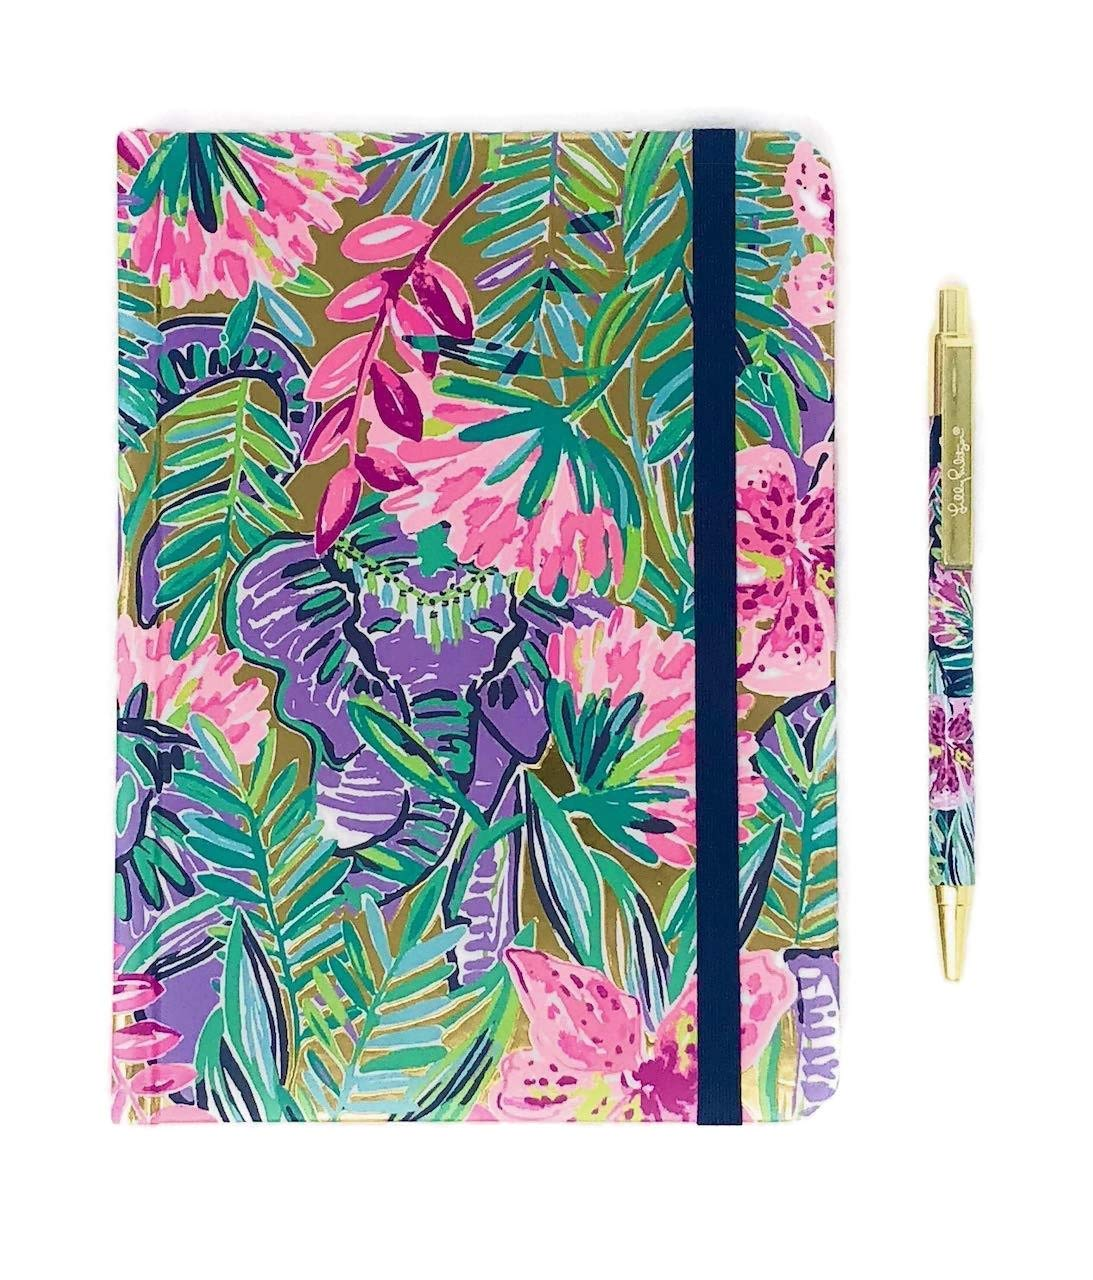 Lilly Pulitzer Journal With Pen (Slathouse Soiree)